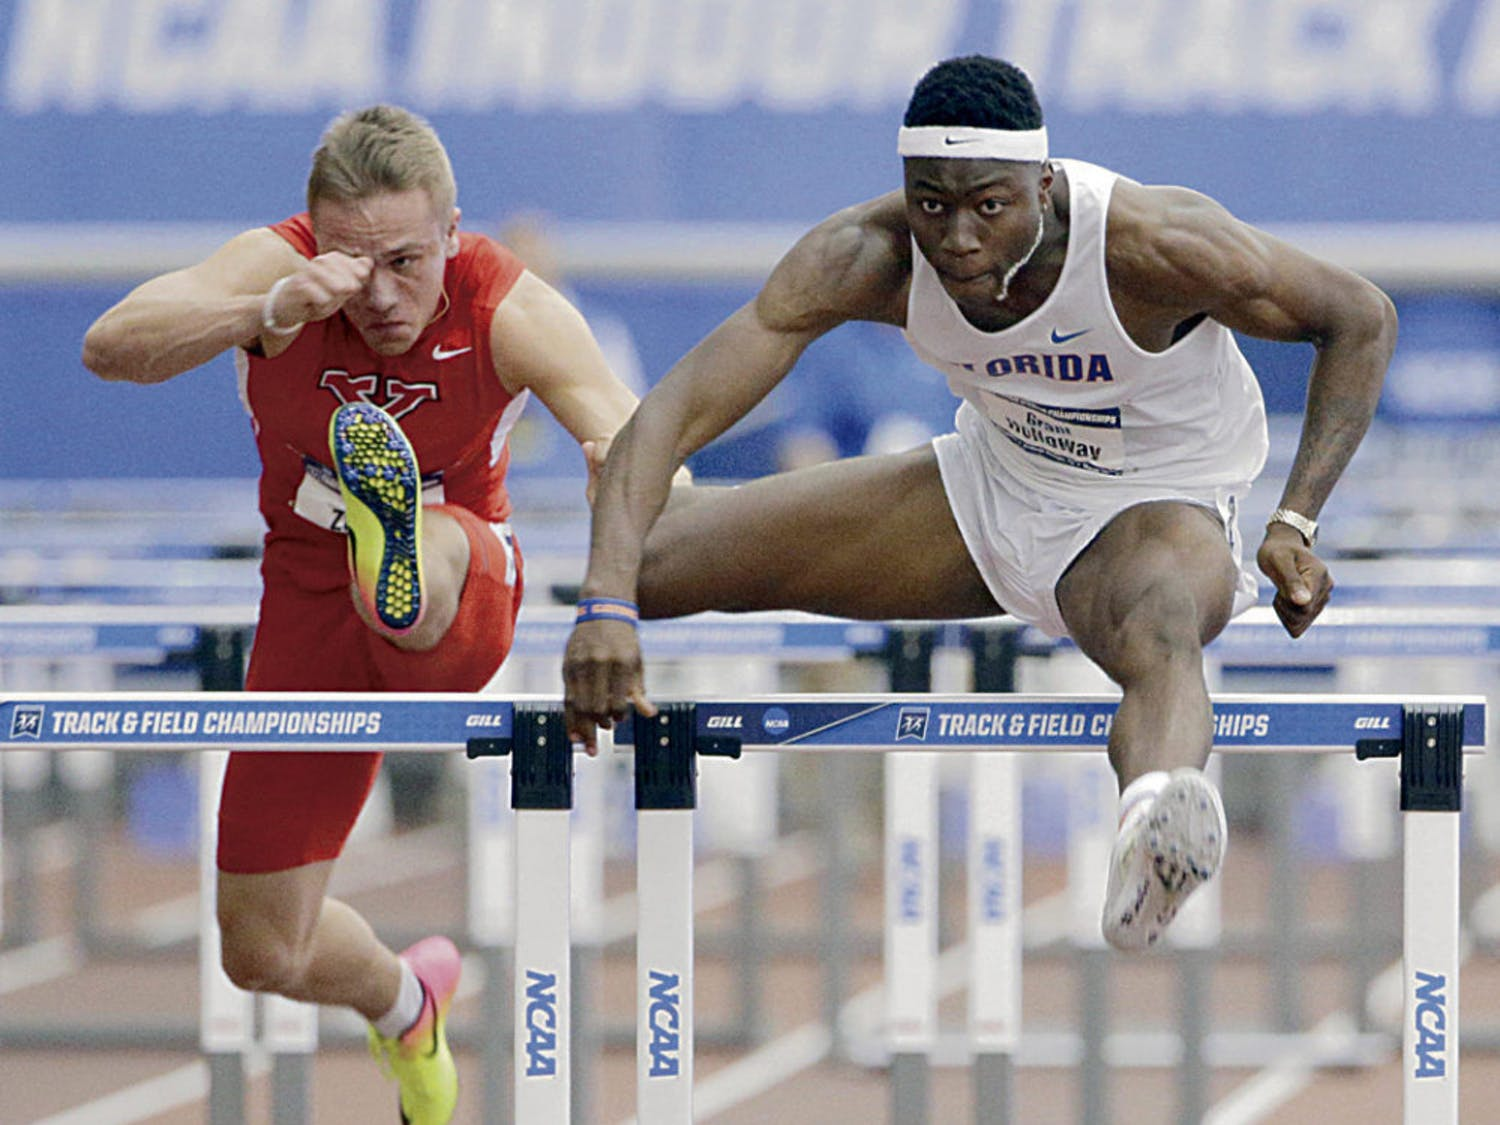 UF junior Grant Holloway ran the 60-meter hurdles in 7.43 seconds at the Tyson Invitational. The time was one millisecond off of his personal record.